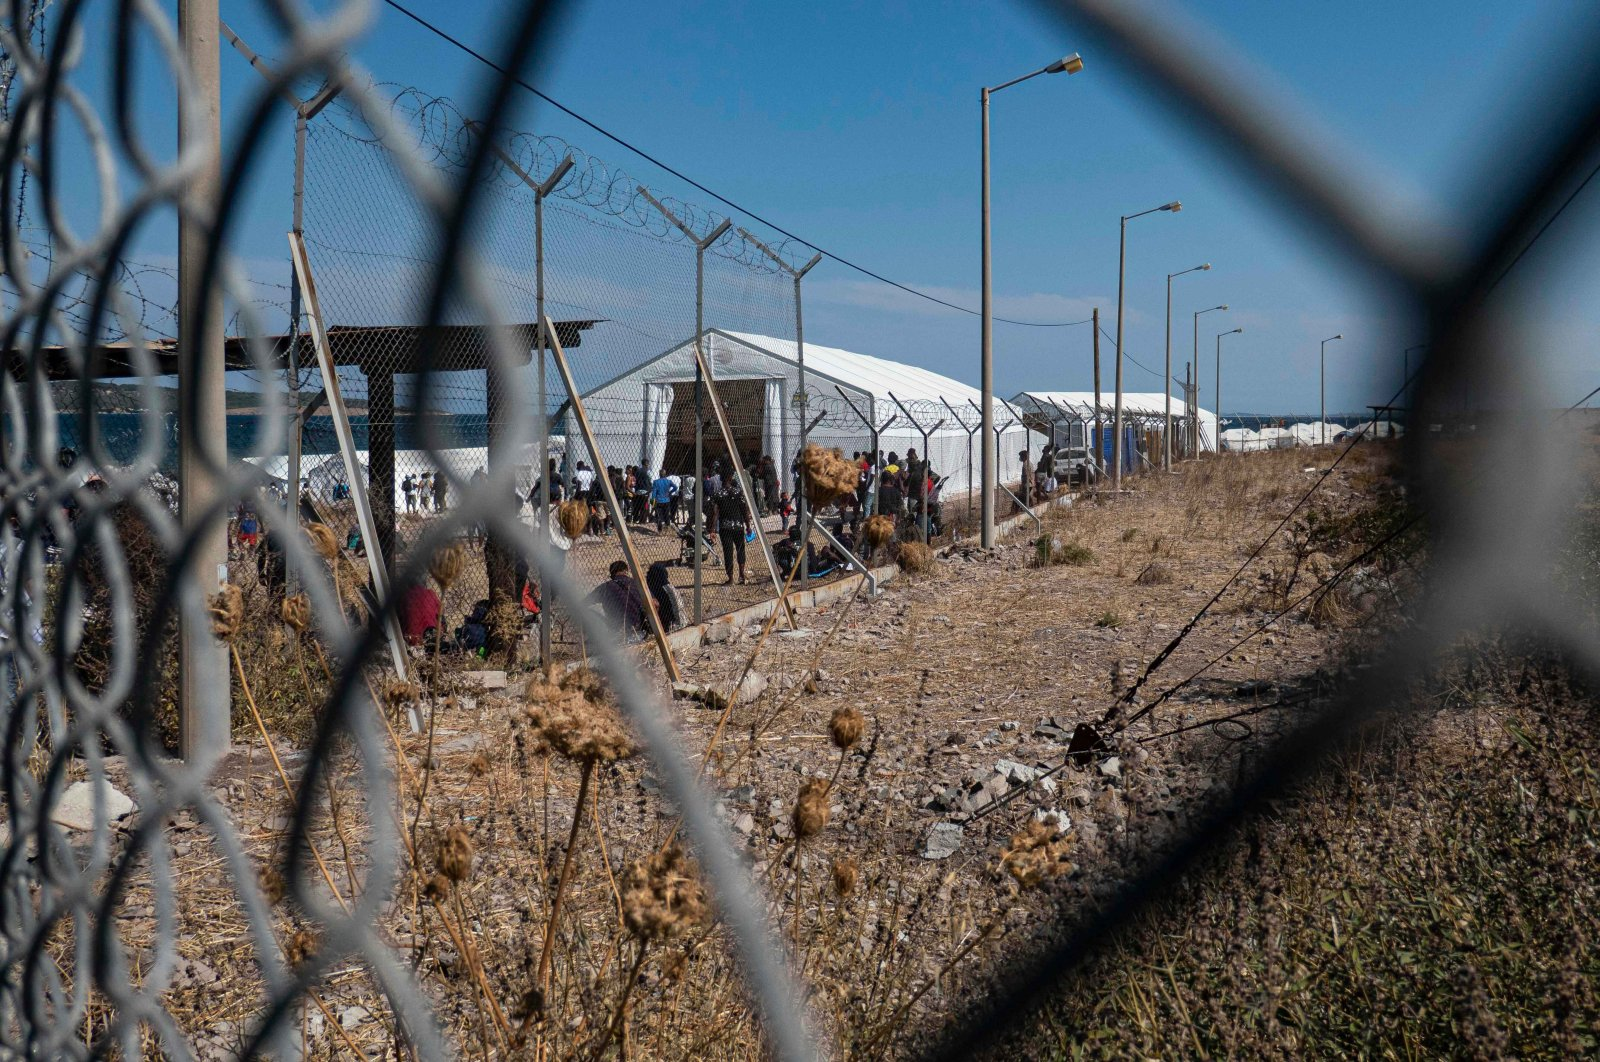 Asylum-seekers wait in front of large white tents bearing the UNHCR or UNICEF logo for supplies such asfood, beds and clothes at thenew temporary refugee camp in Kara Tepe, Lesbos, Greece, Sept. 20, 2021(Getty Images)